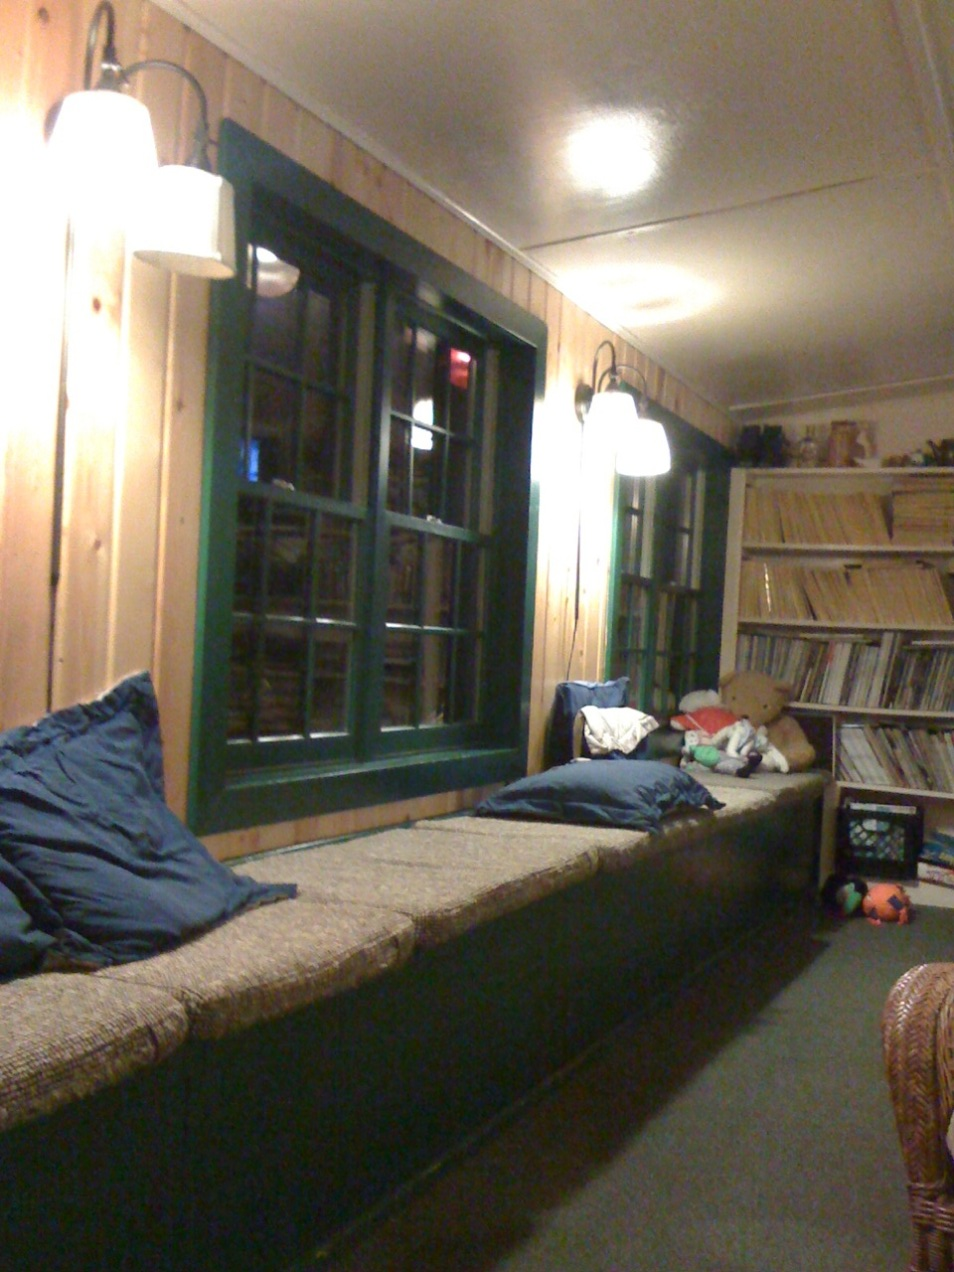 Talkeetna Roadhouse common area, photo 2.